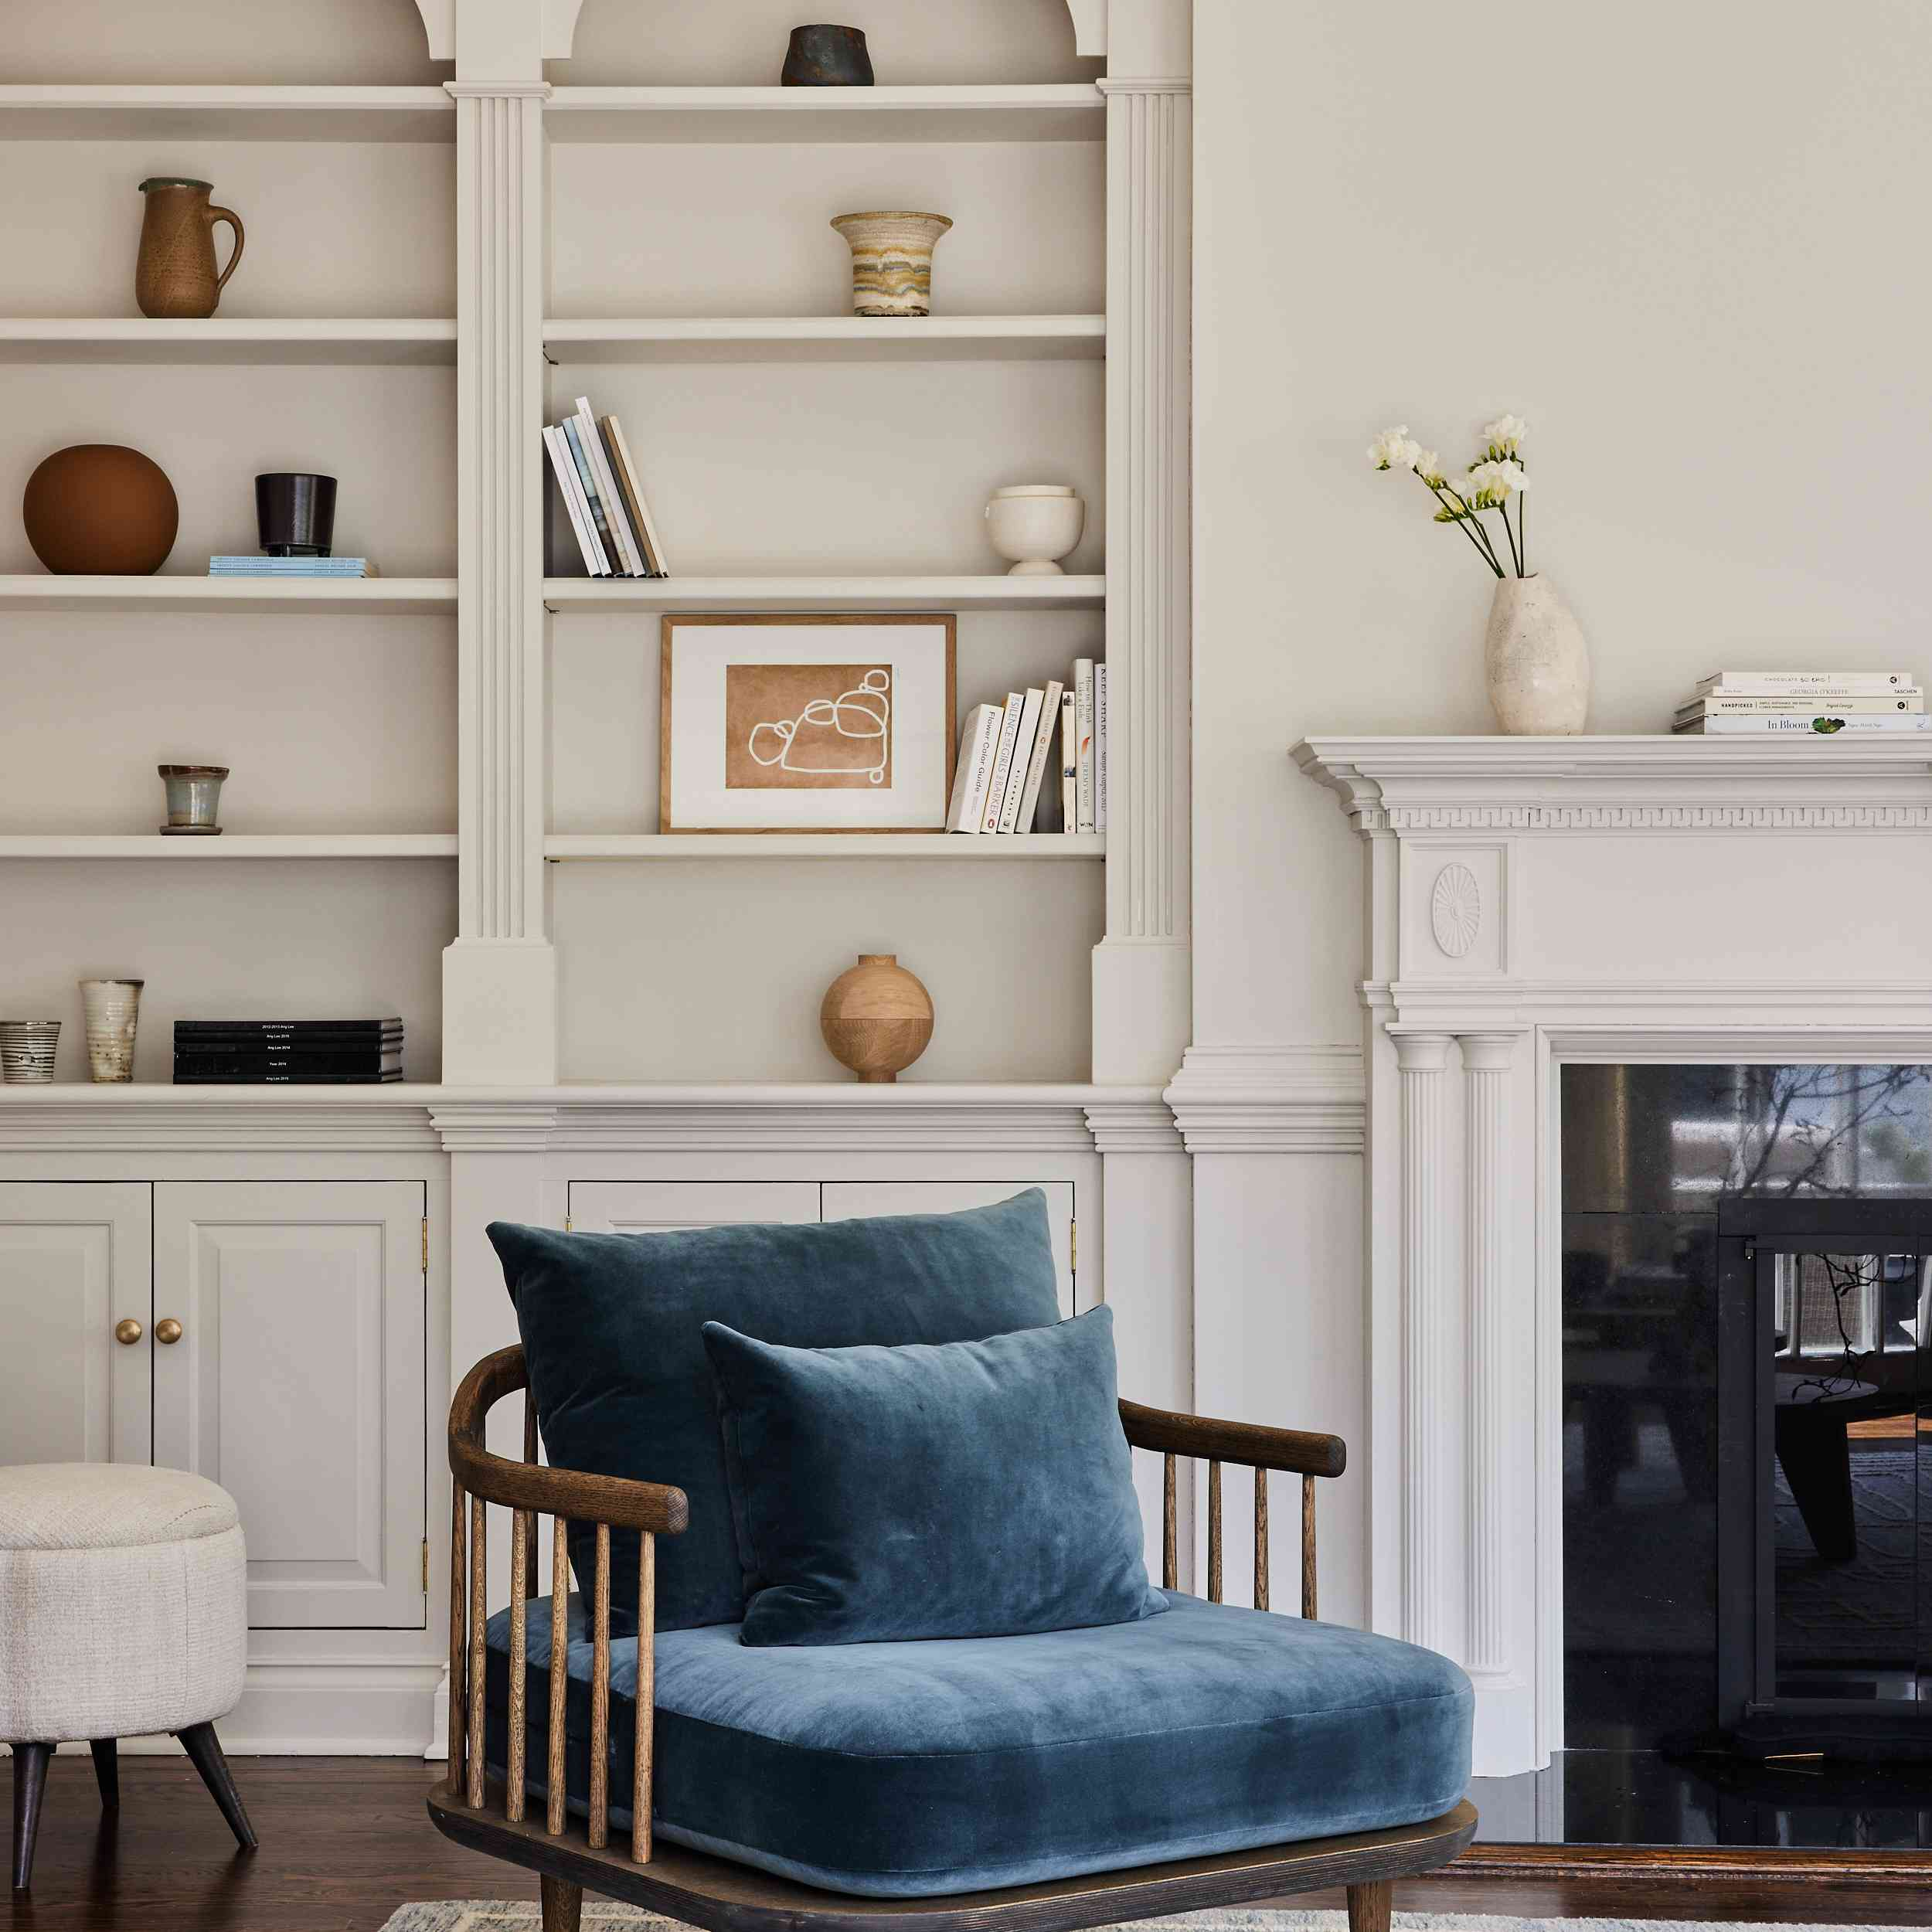 connecticut farmhouse home tour - blue velvet accent chair in front of arched built-in bookcases